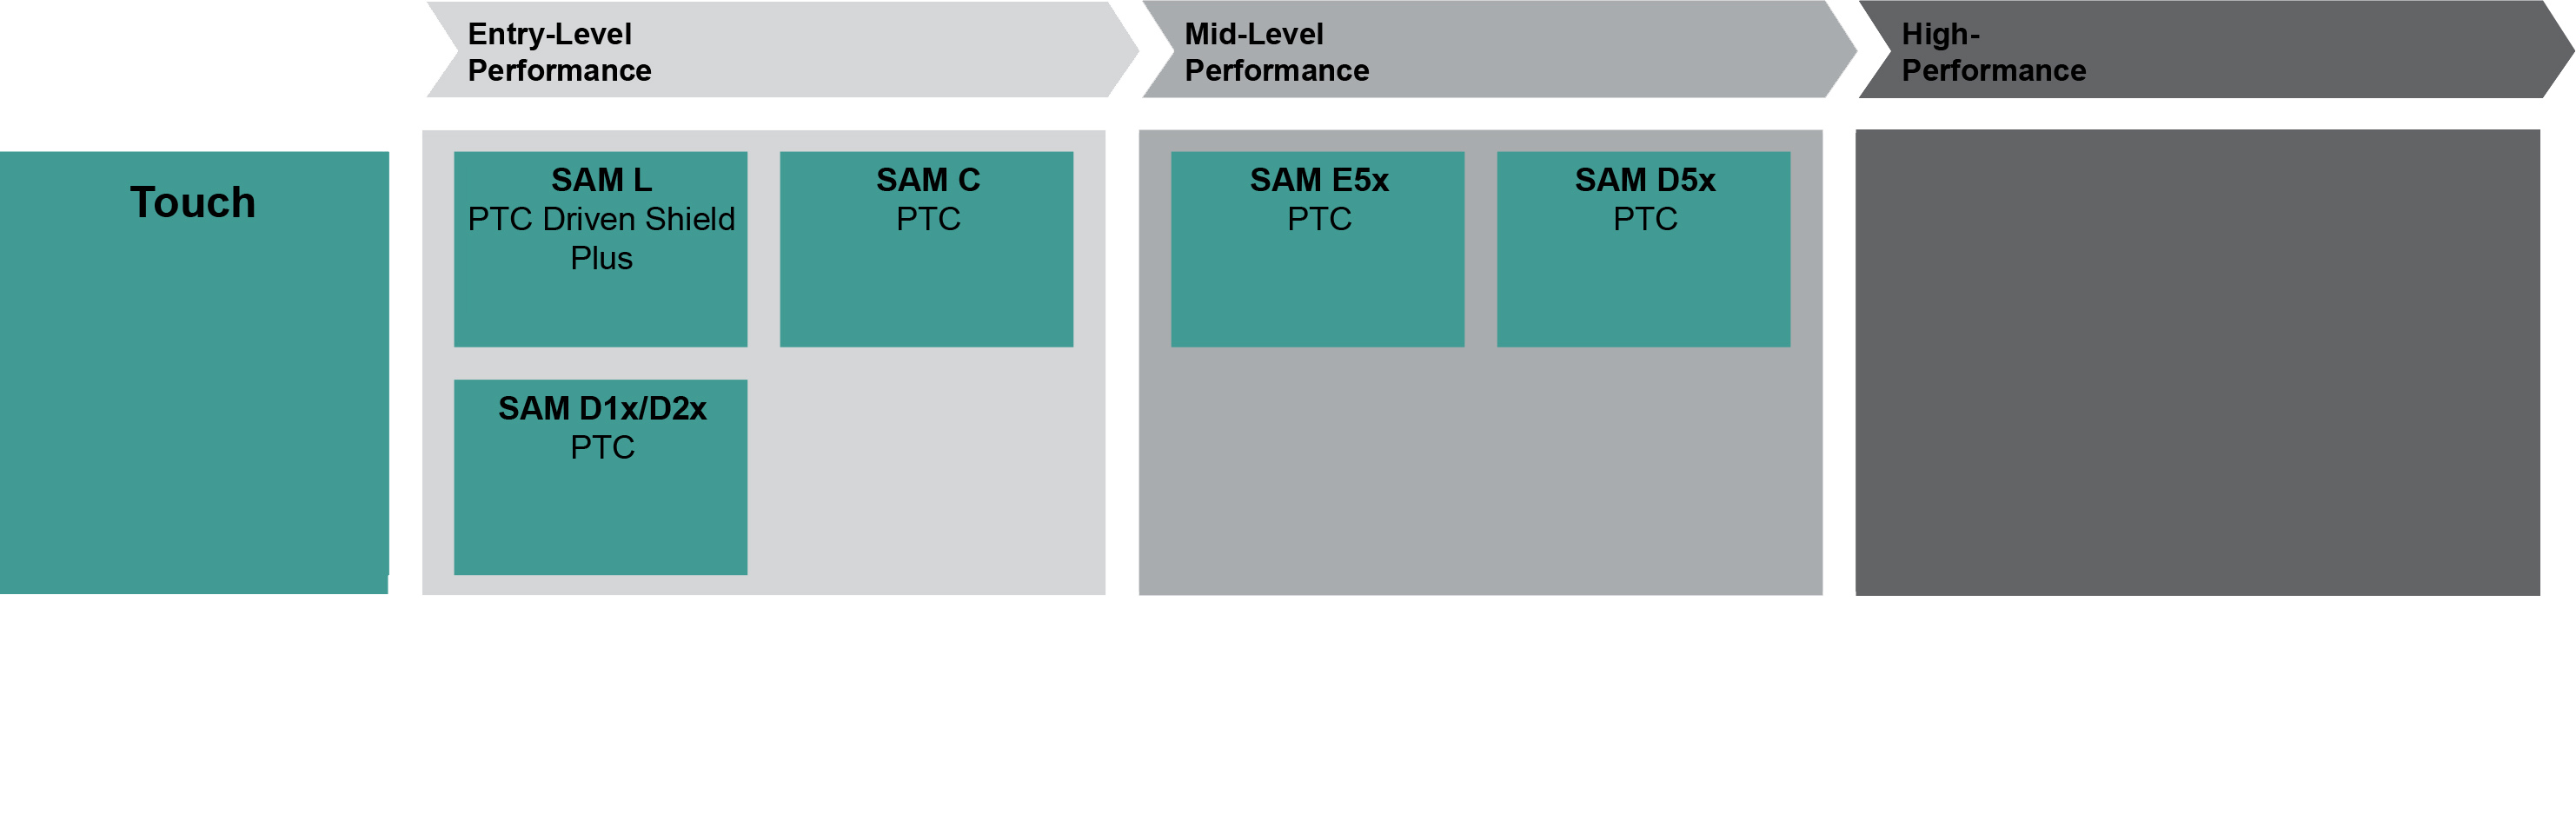 hight resolution of touch block diagram for 32bit